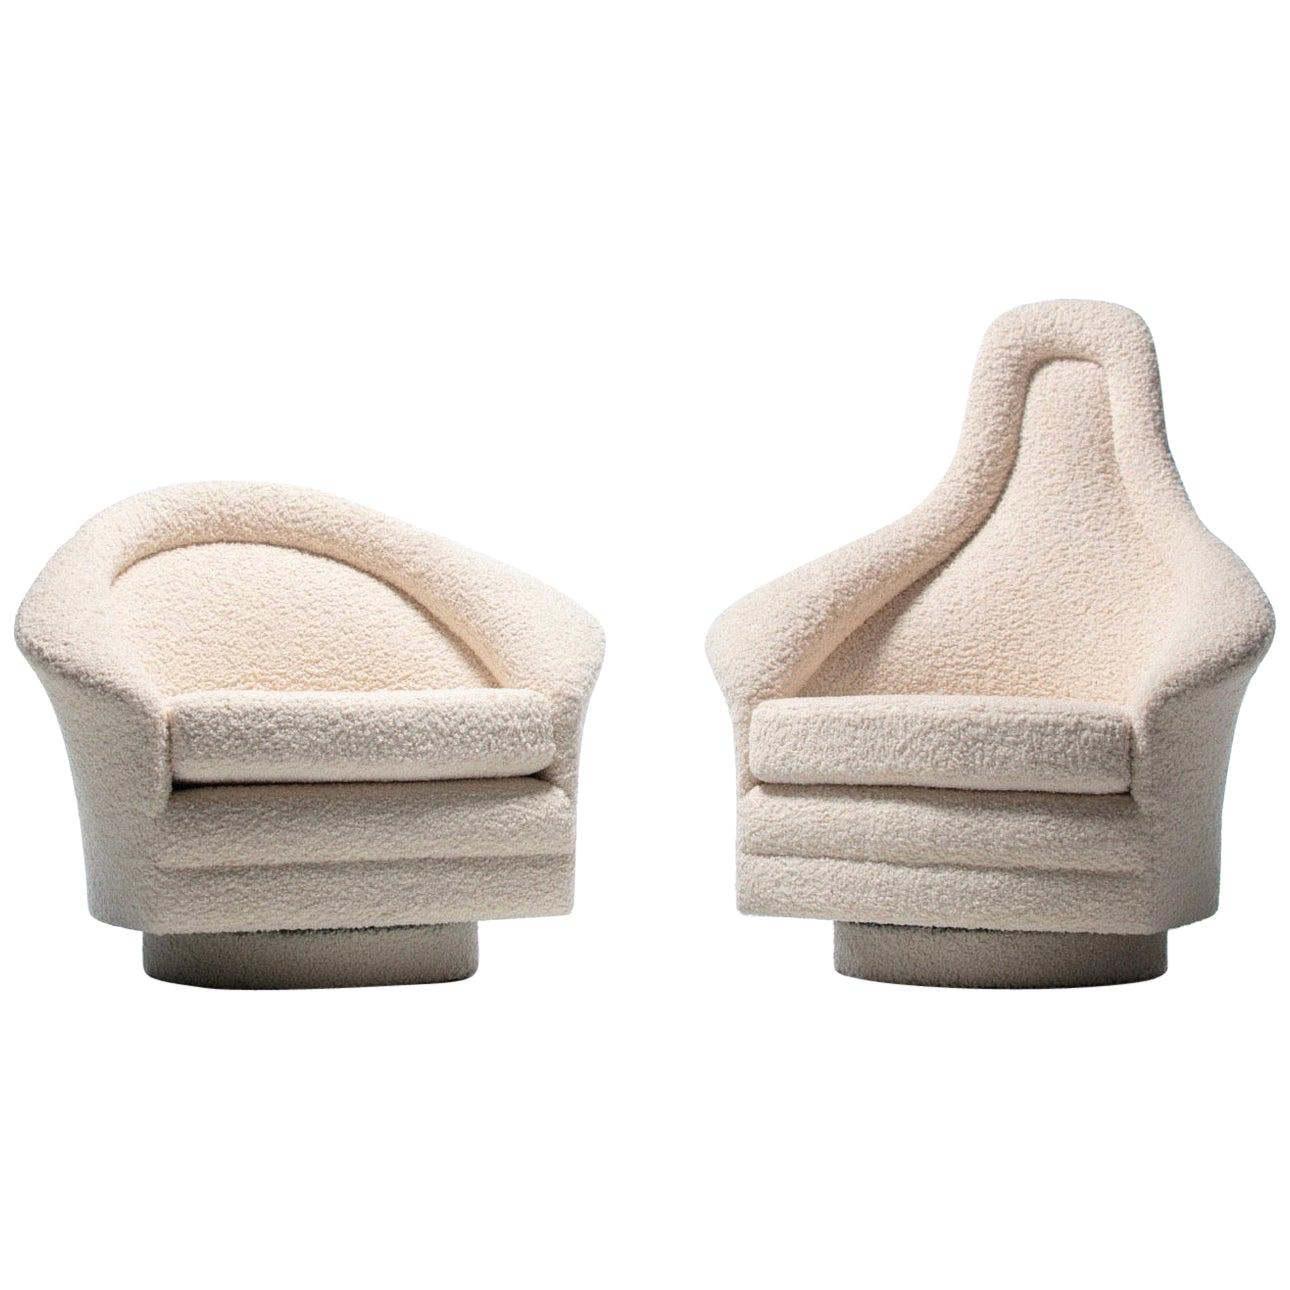 Pair of Adrian Pearsall Mom & Pop Swivel Lounge Chairs in Ivory Bouclé